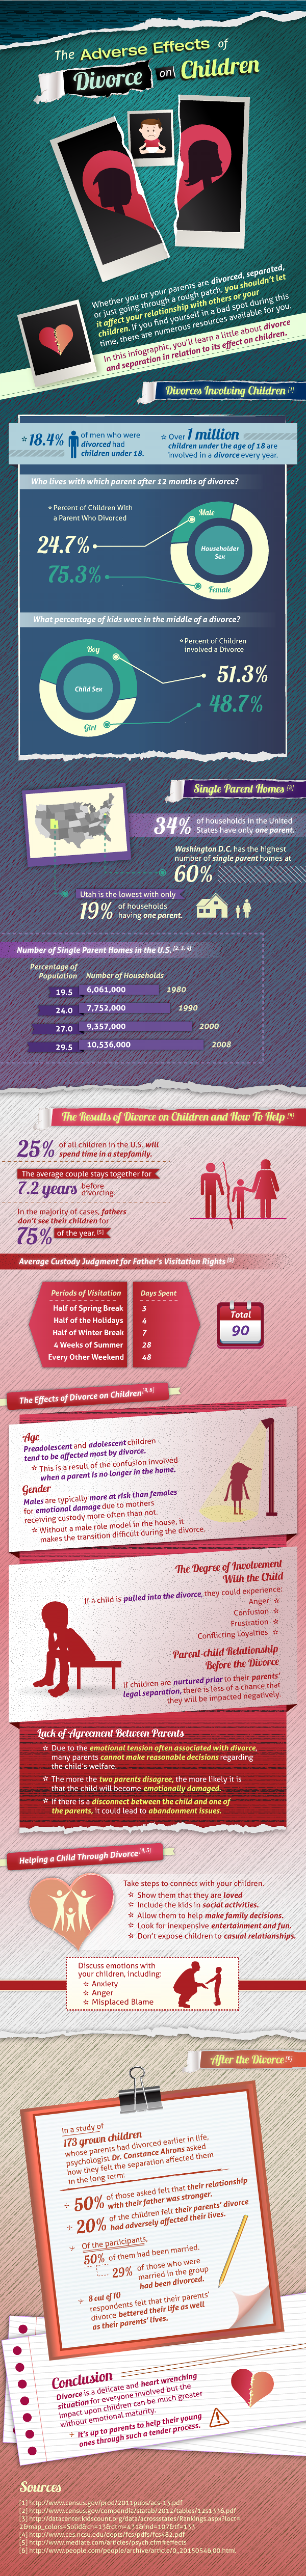 Adverse Effects of Divorce on Children Infographic